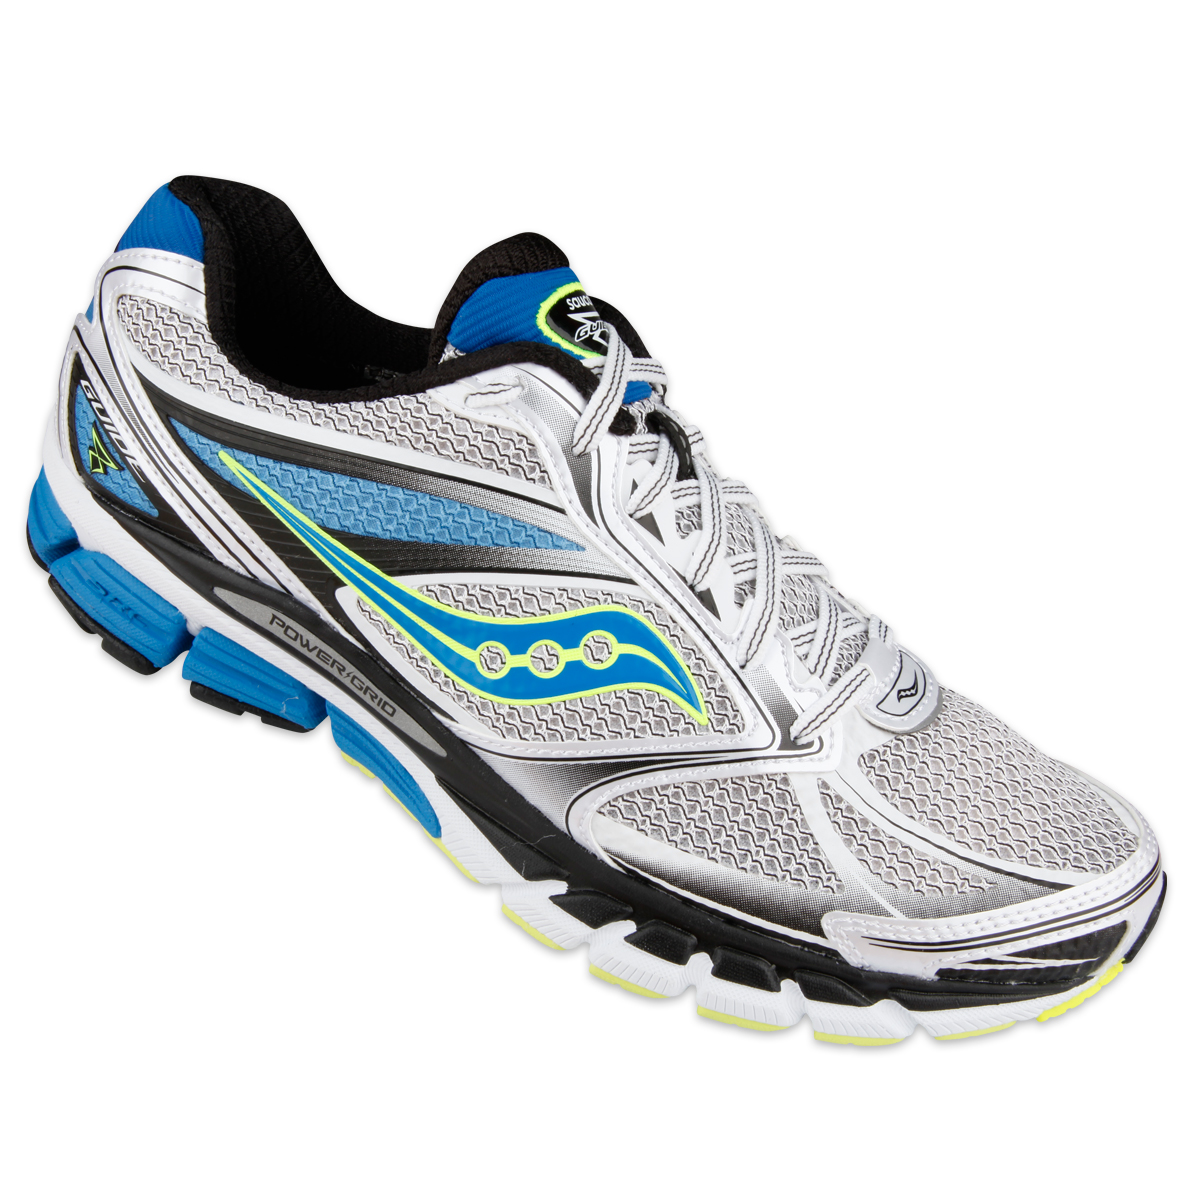 saucony powergrid guide 8, OFF 73%,Buy!